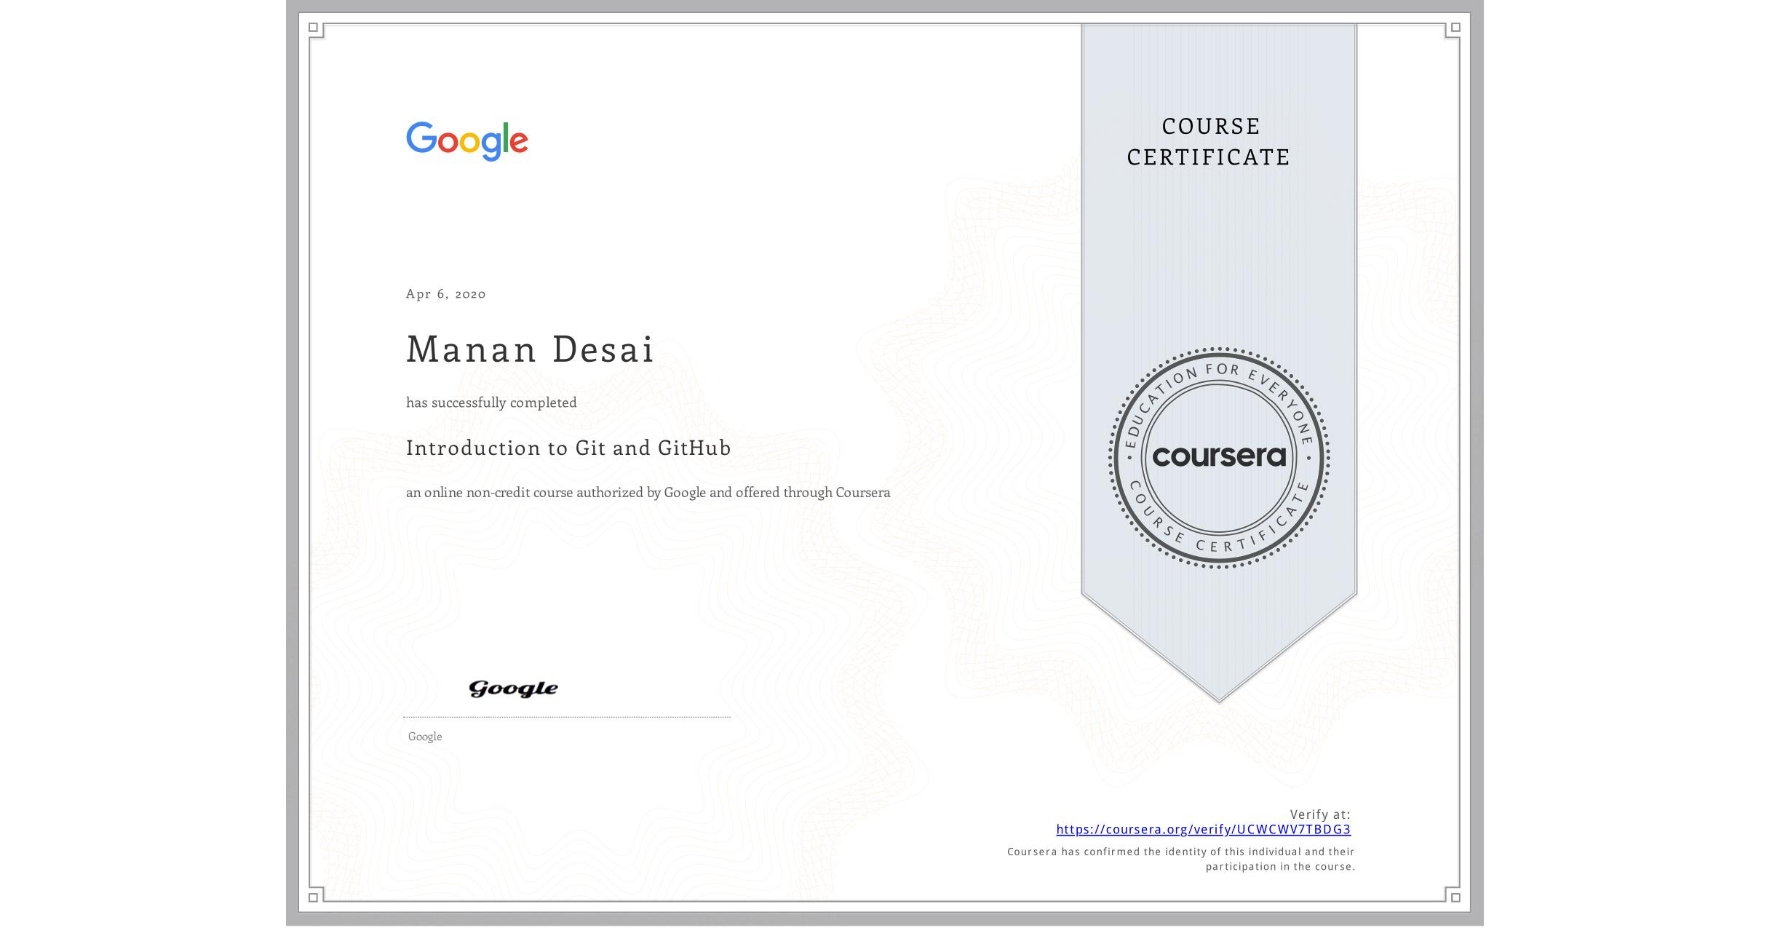 View certificate for Manan Desai, Introduction to Git and GitHub, an online non-credit course authorized by Google and offered through Coursera